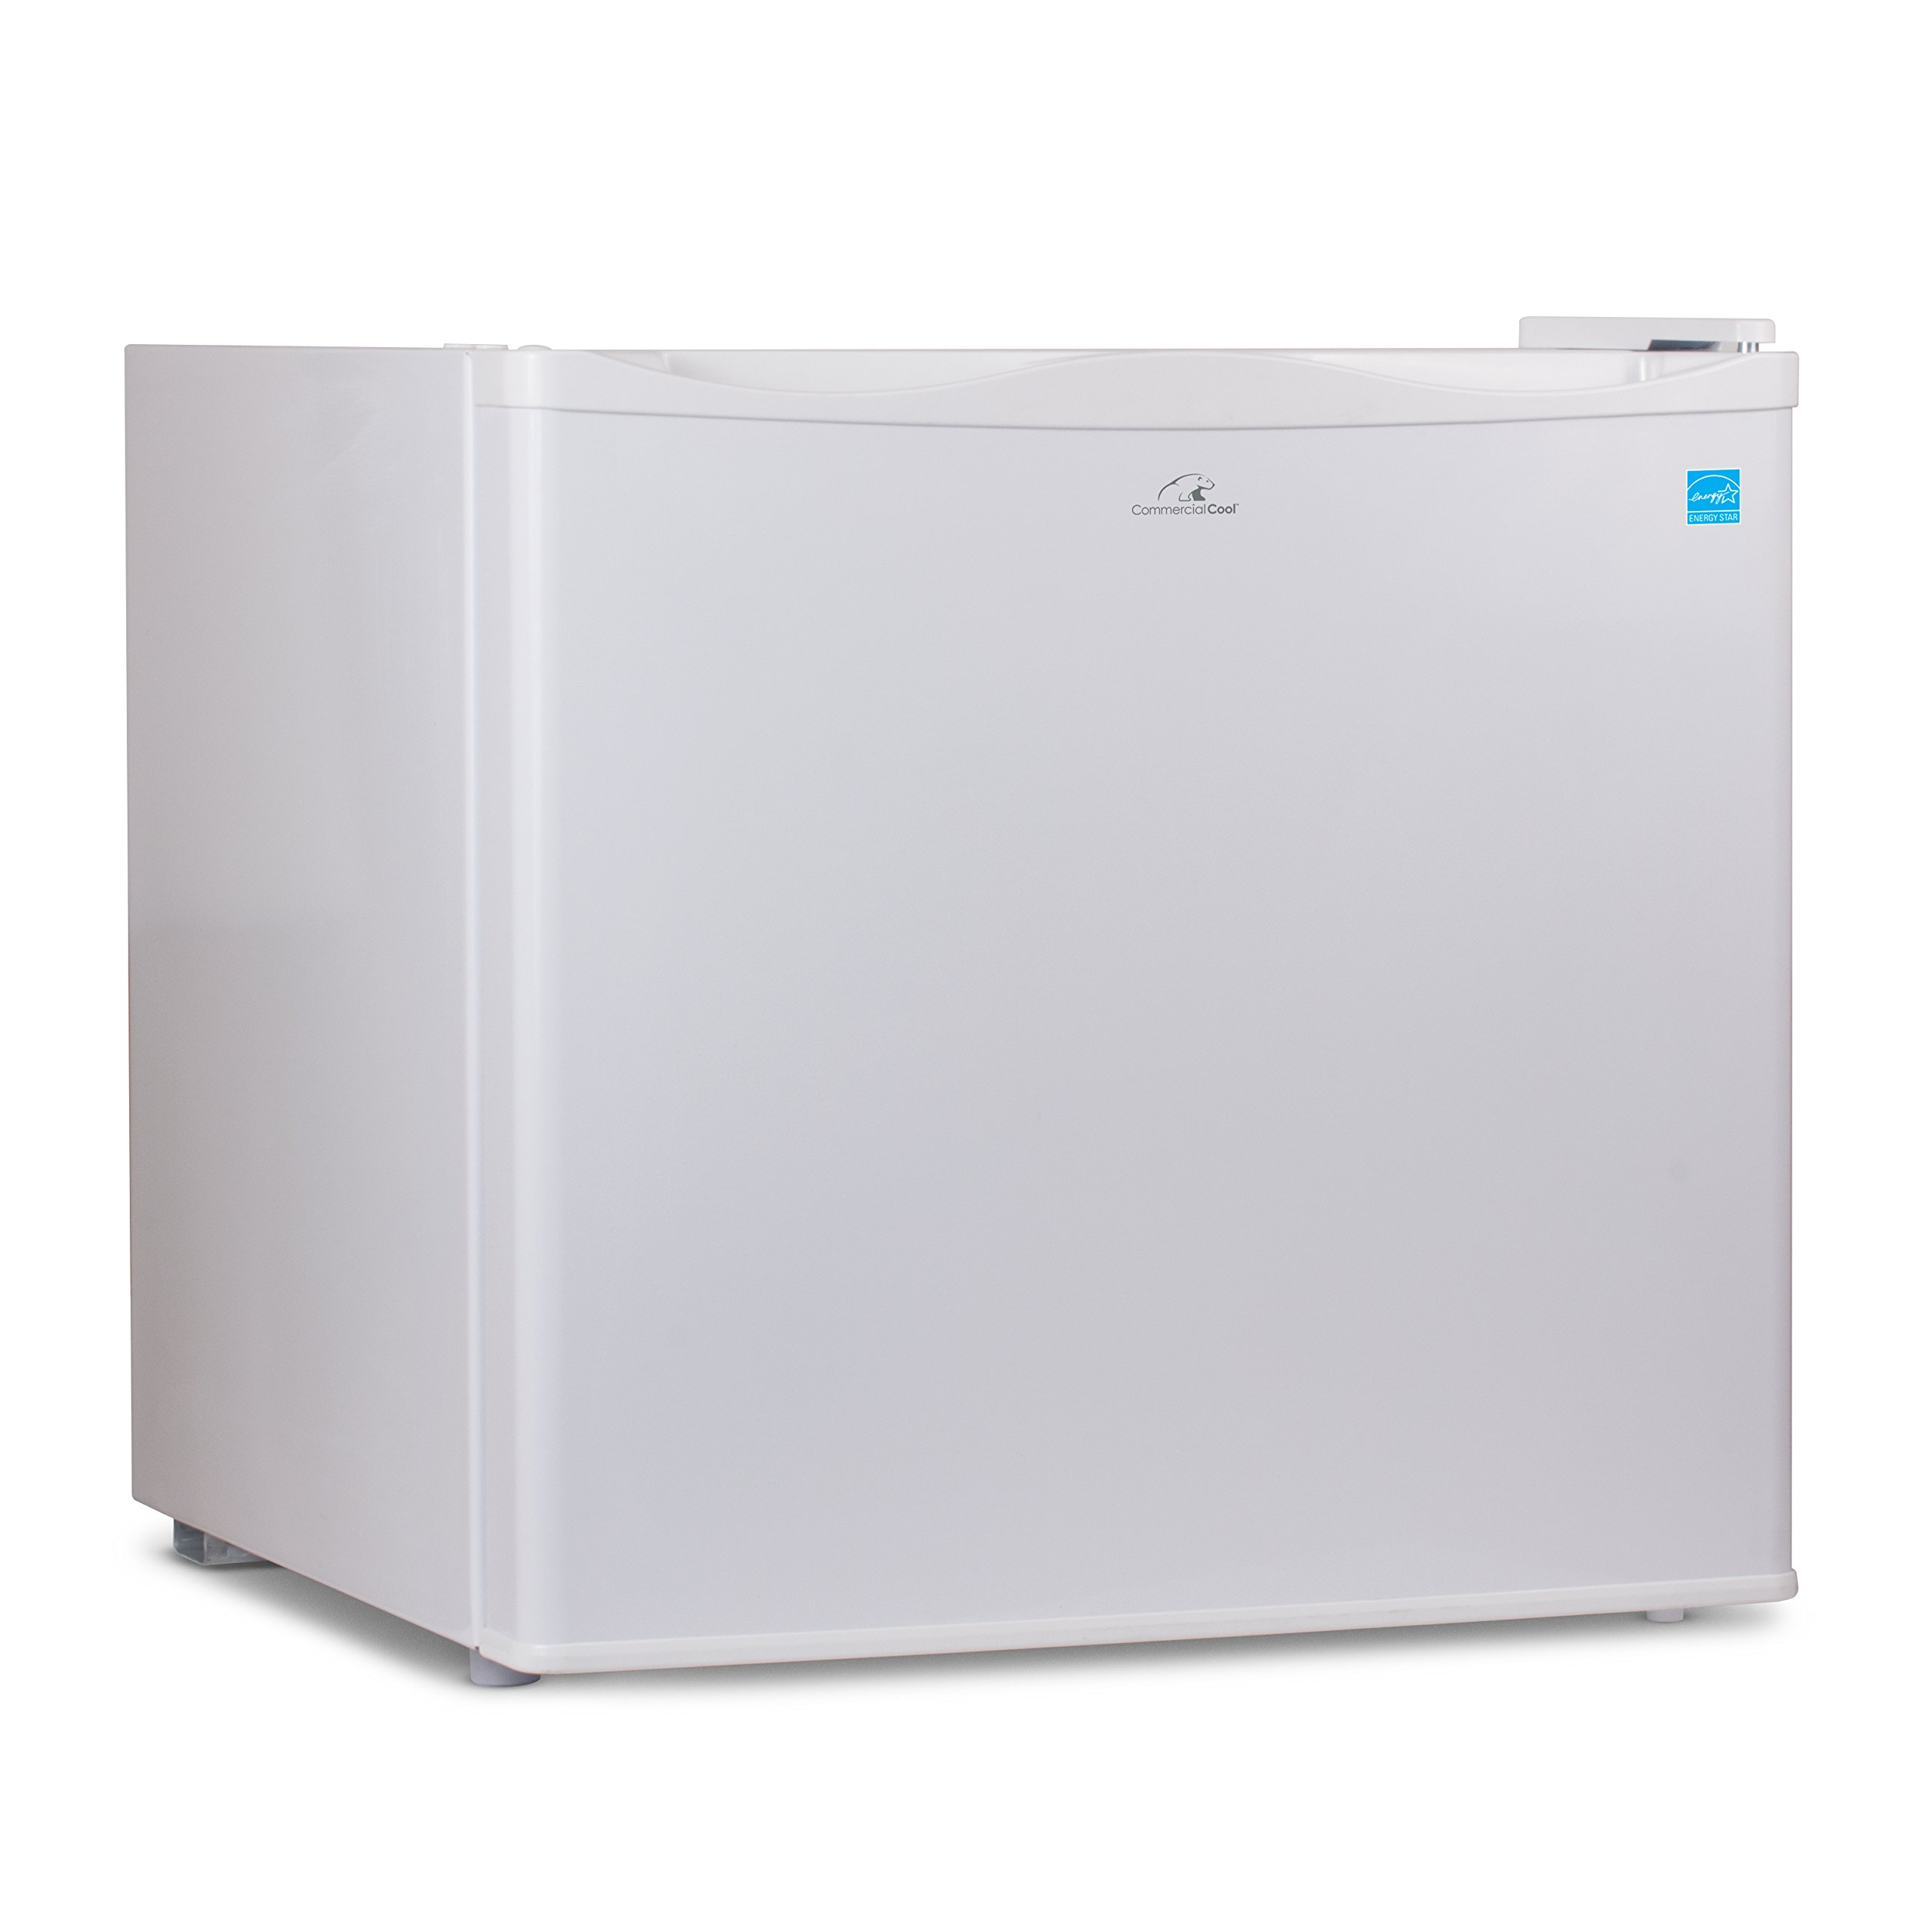 Commercial Cool CCUK12W 1.2 Cu. Ft. Upright Freezer with Adjustable Thermostat Control and R600a Refrigerant, White by Commercial Cool